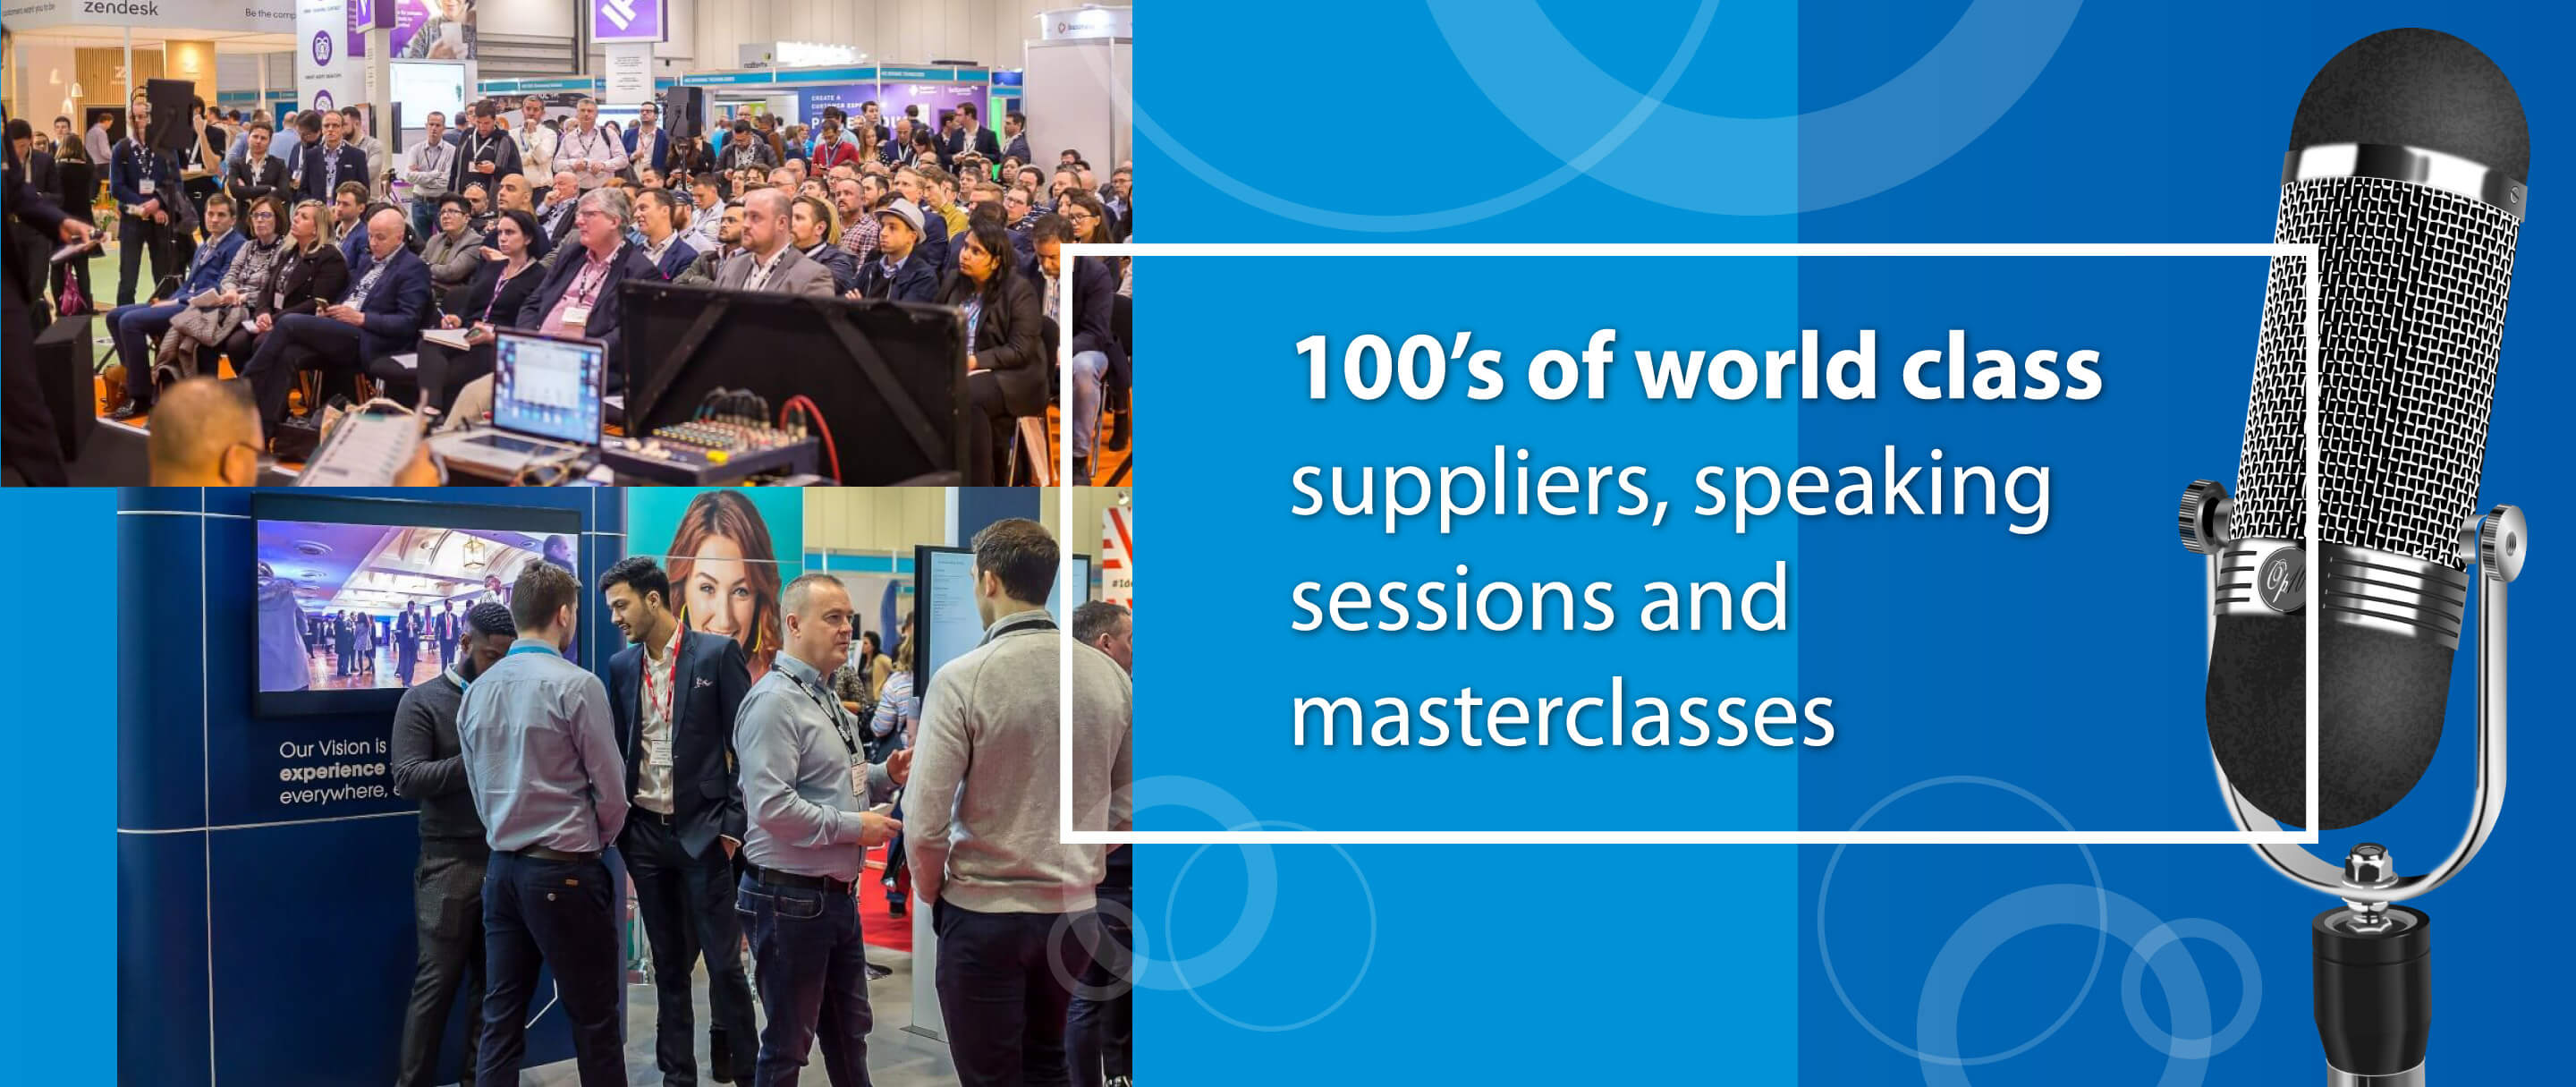 100's of world class suppliers, speaking sessions and masterclasses